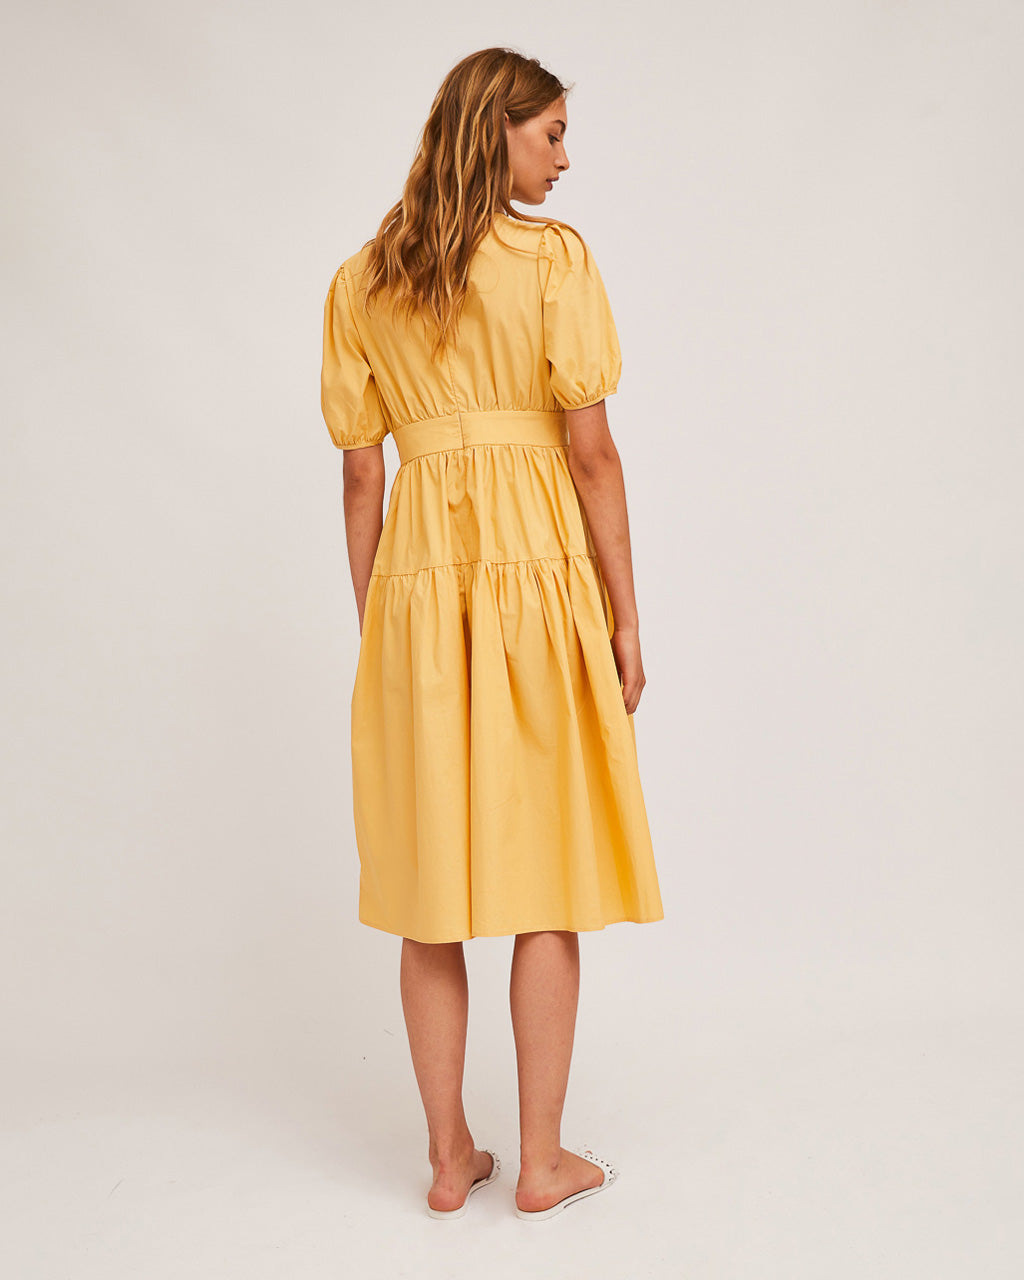 back view of model wearing yellow midi dress with white slide sandals